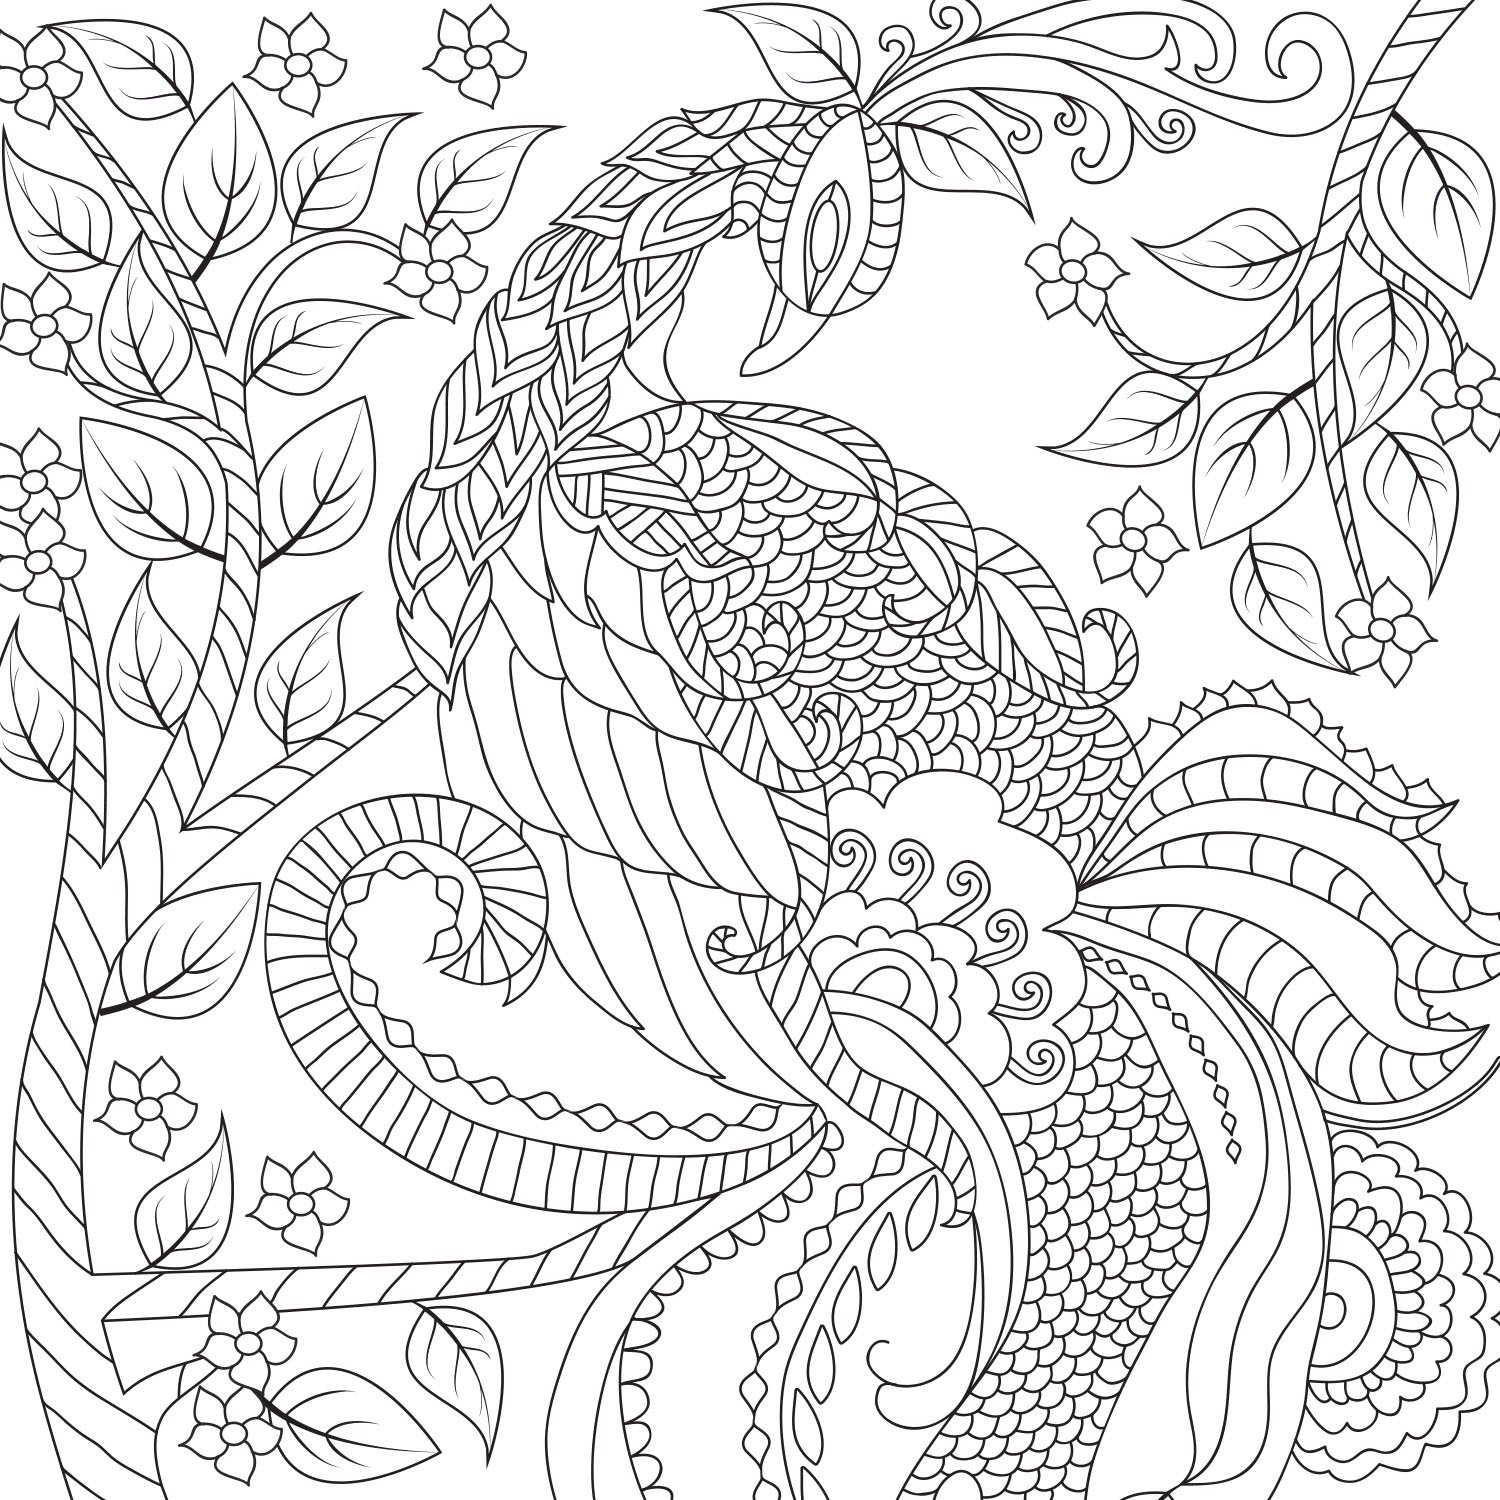 Color book party mn - Amazon Com Best Adult Coloring Book Double Size 140 Pages With 68 Designs Amazing Designs Stress Relieving Patterns Including Mandalas